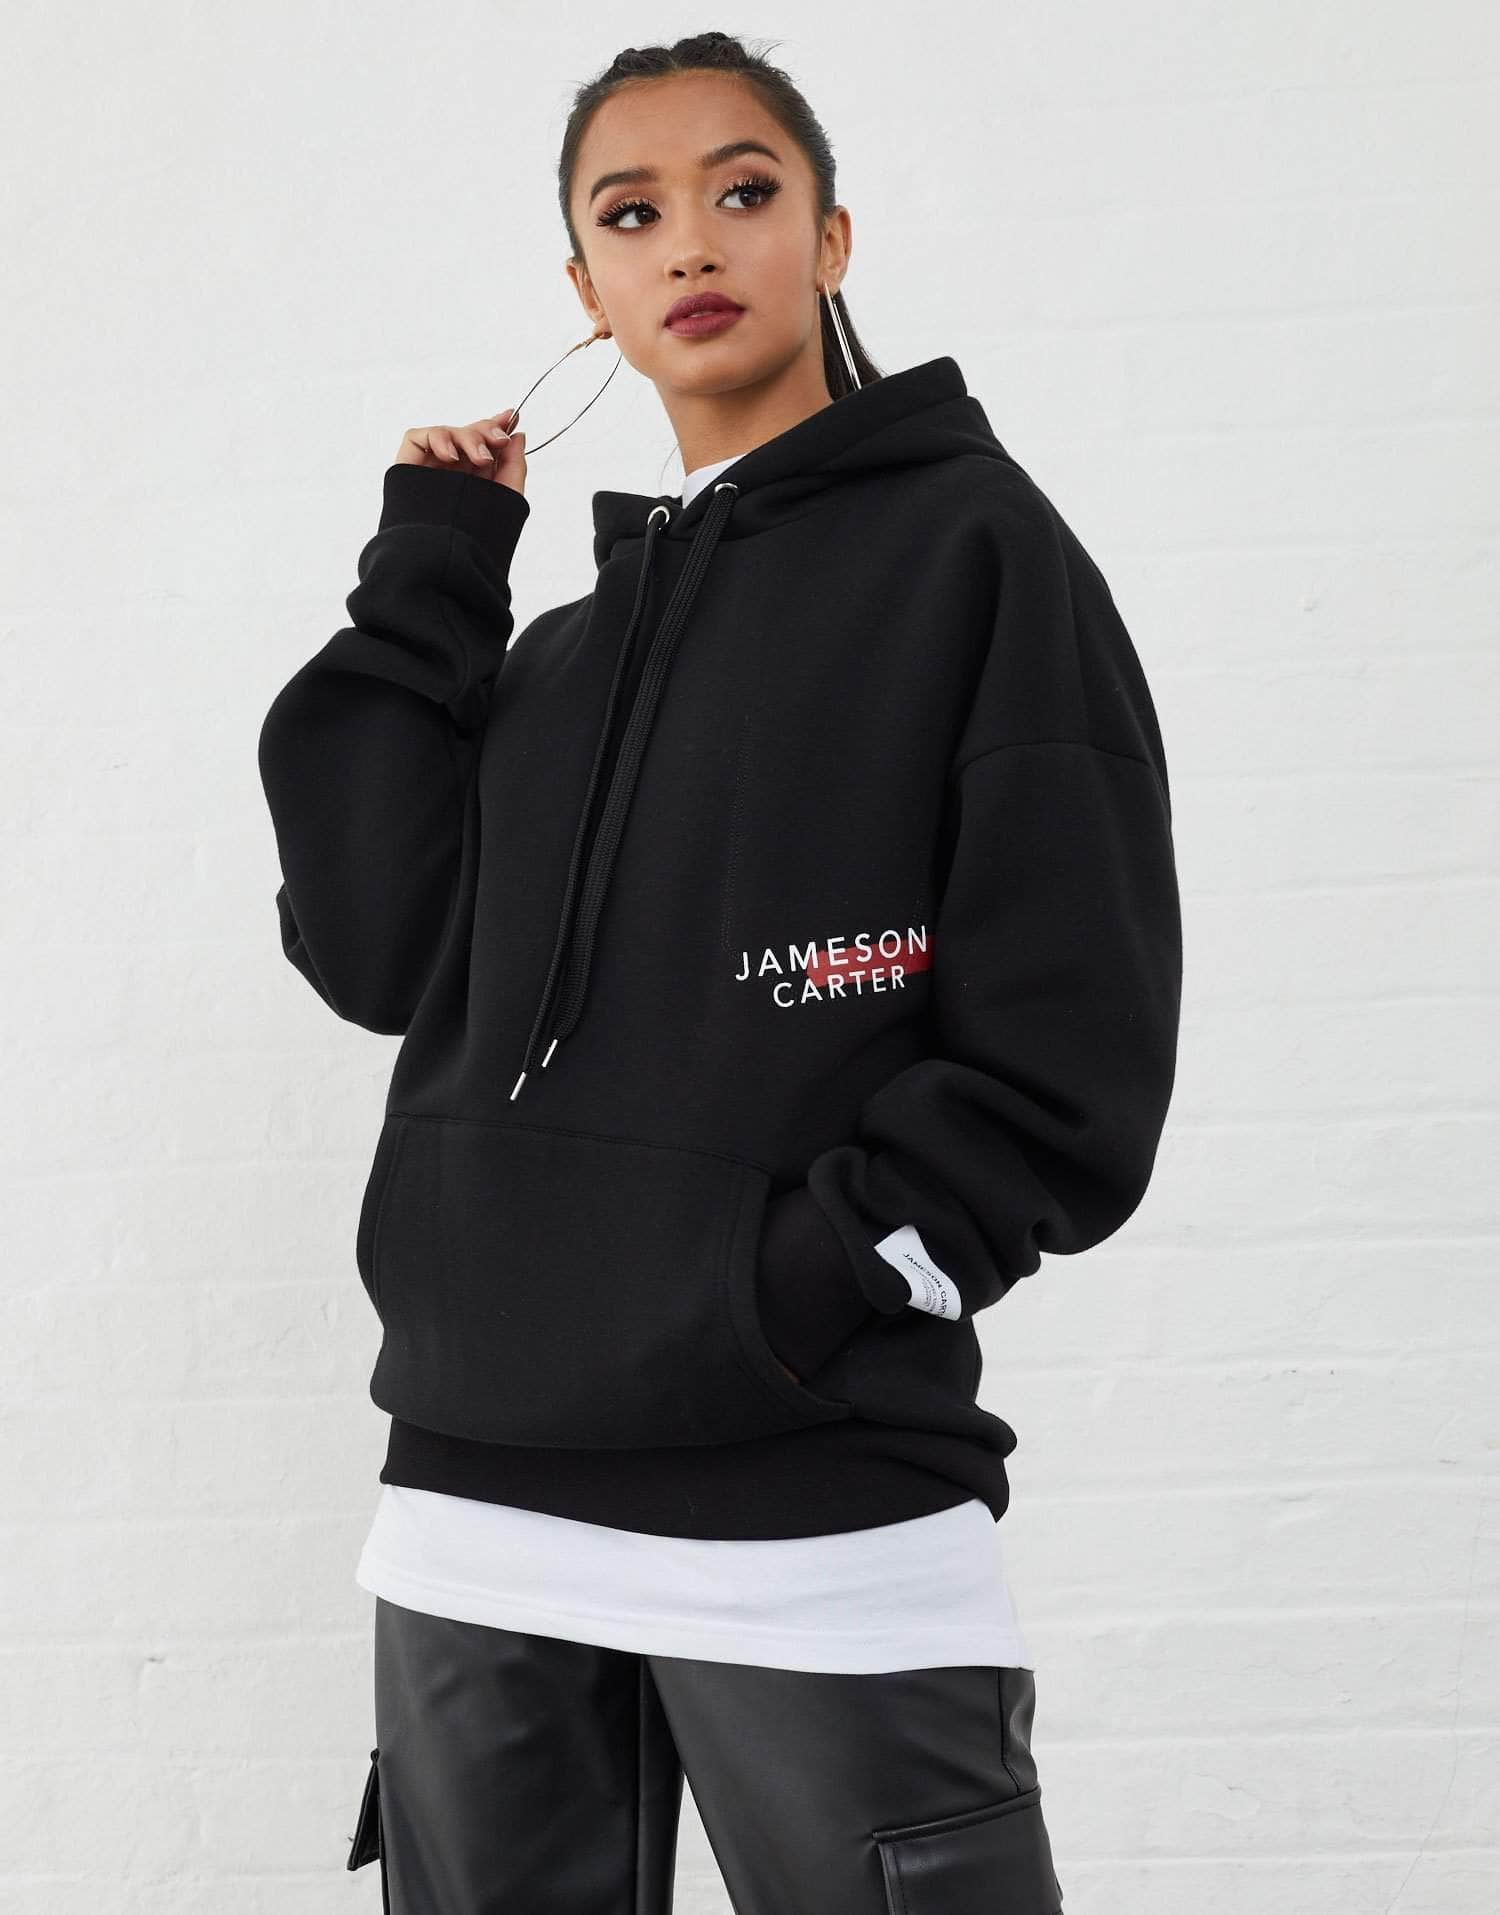 Jameson Carter Hoodies, not-sale Malone Oversized Hoodie - Black